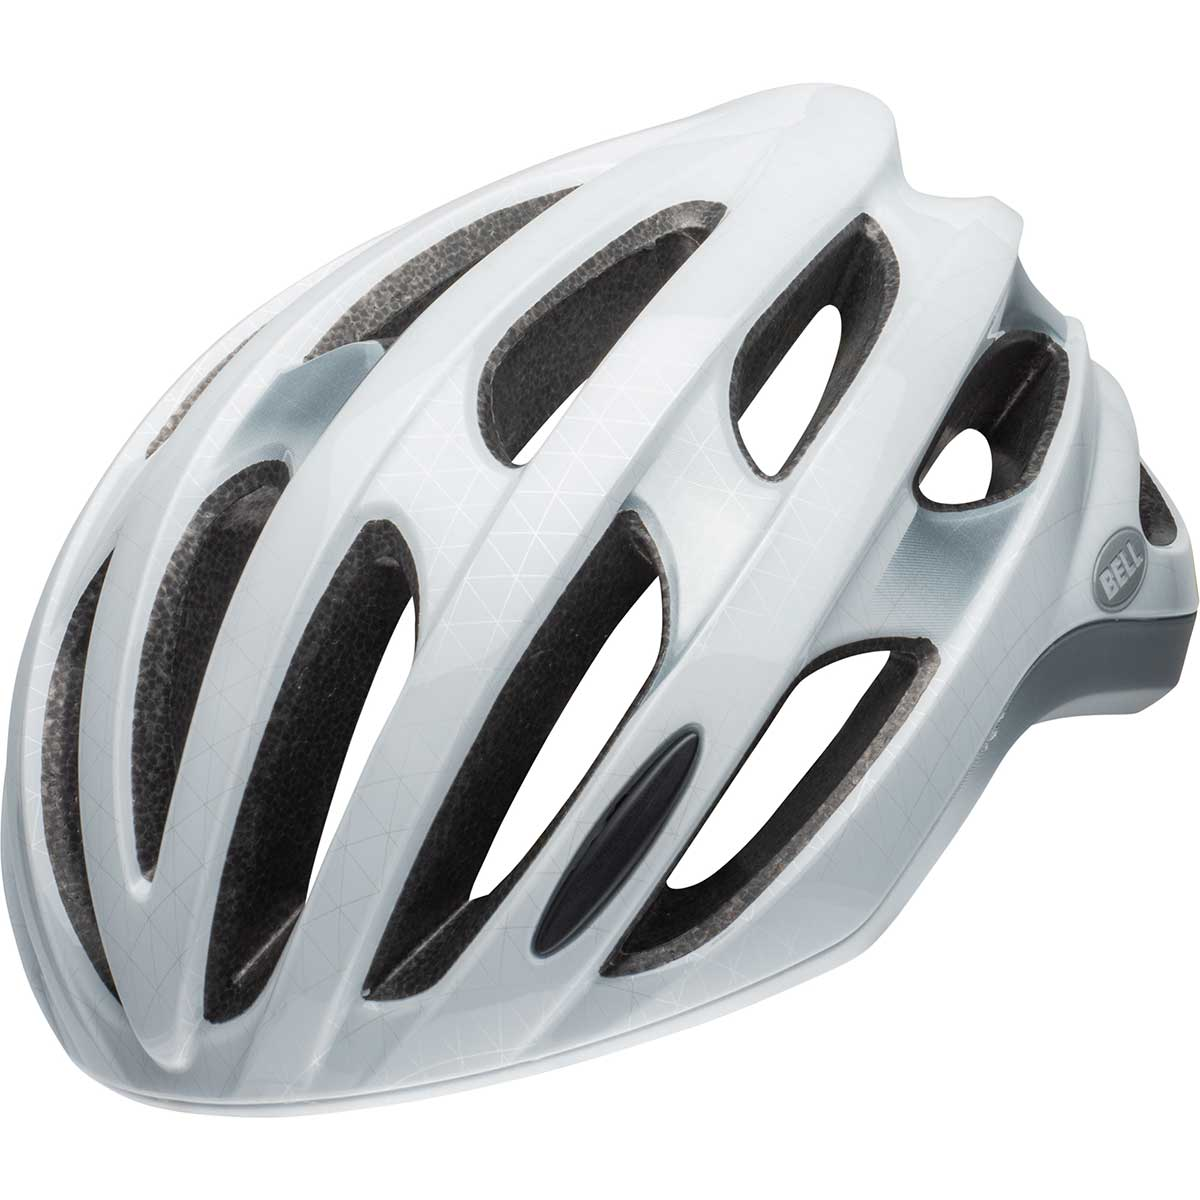 Bell Formula LED MIPS bike helmet in White and Silver and Black